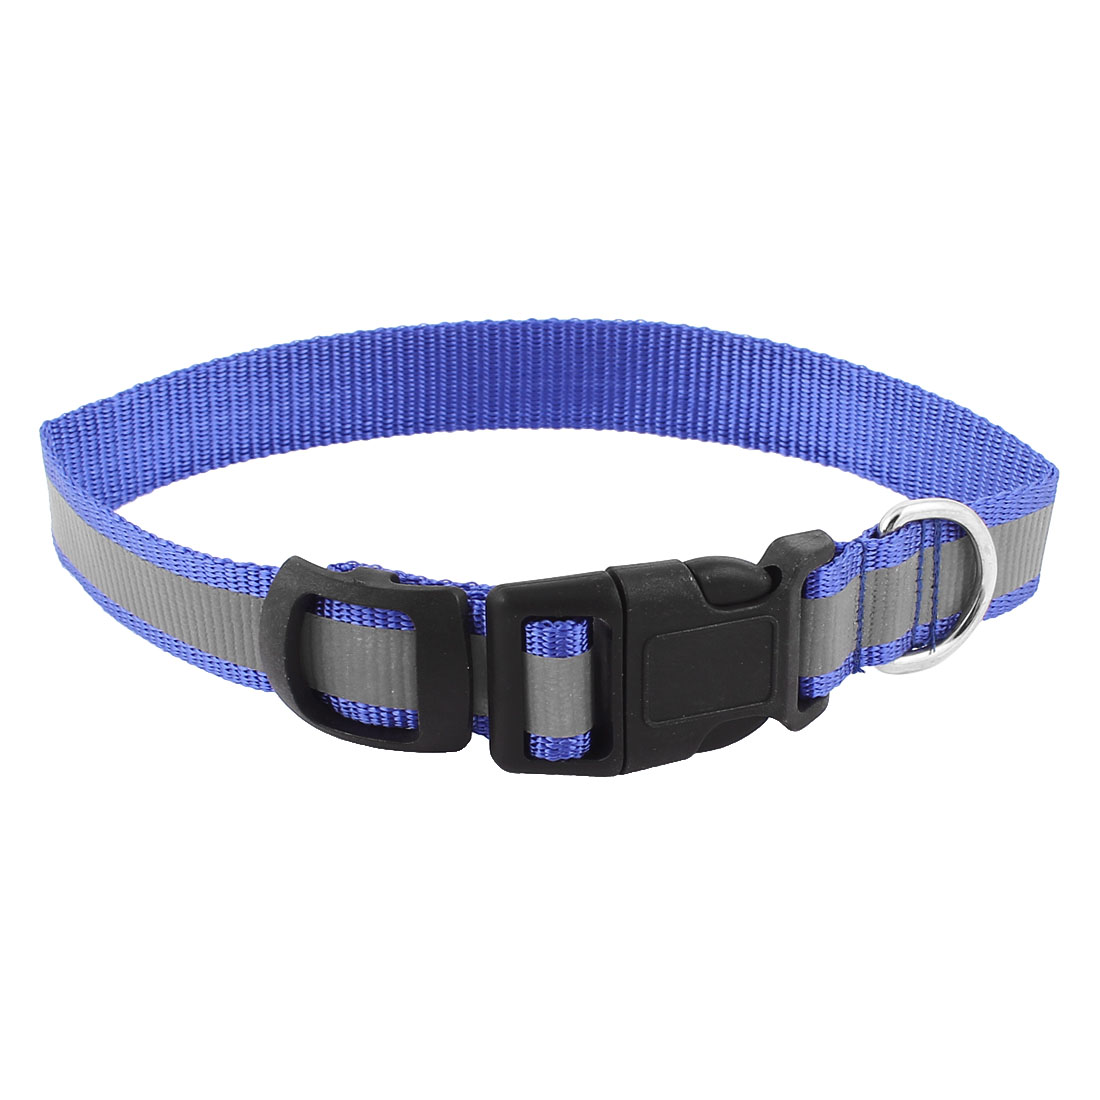 Pet Dog Doggy Buckle Release Tracking Reflective Collar Leash Belt Blue